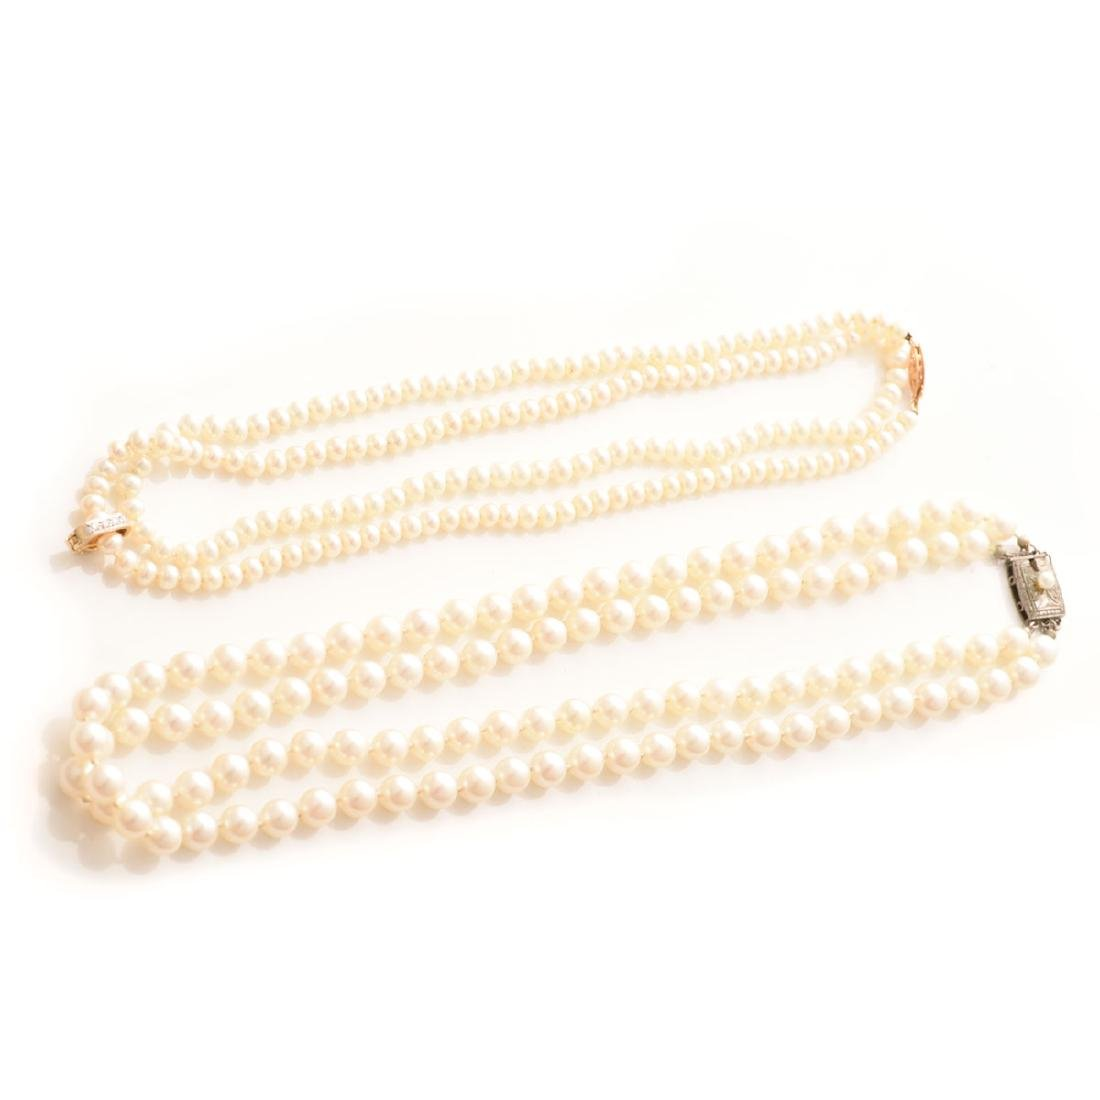 Collection of Diamond, Cultured Pearl, 14k Necklaces.